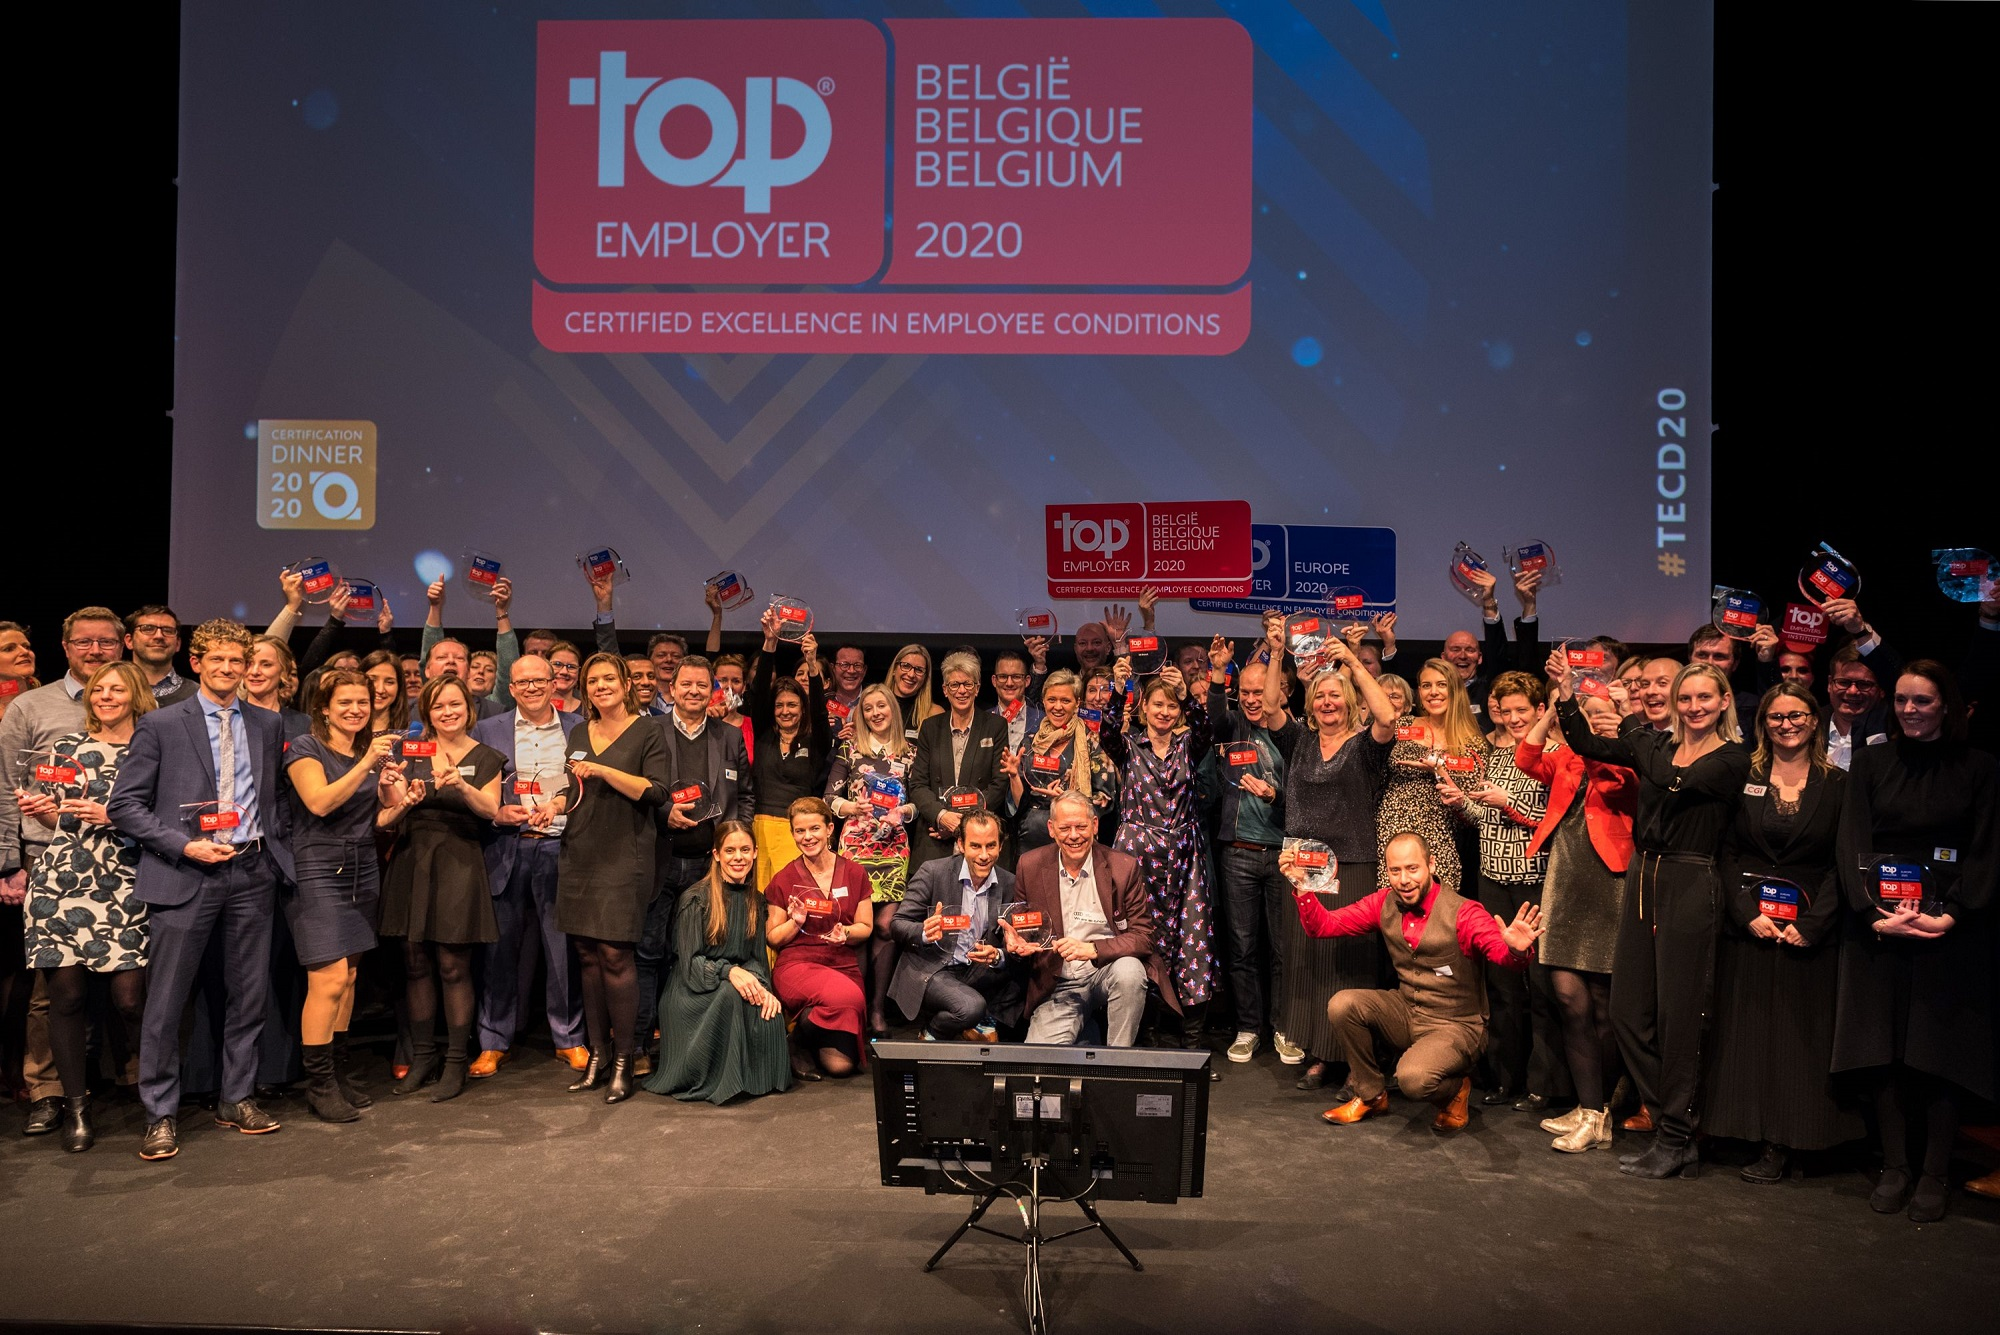 Belgian Top Employers at the Top Employers Belgium Certification Event